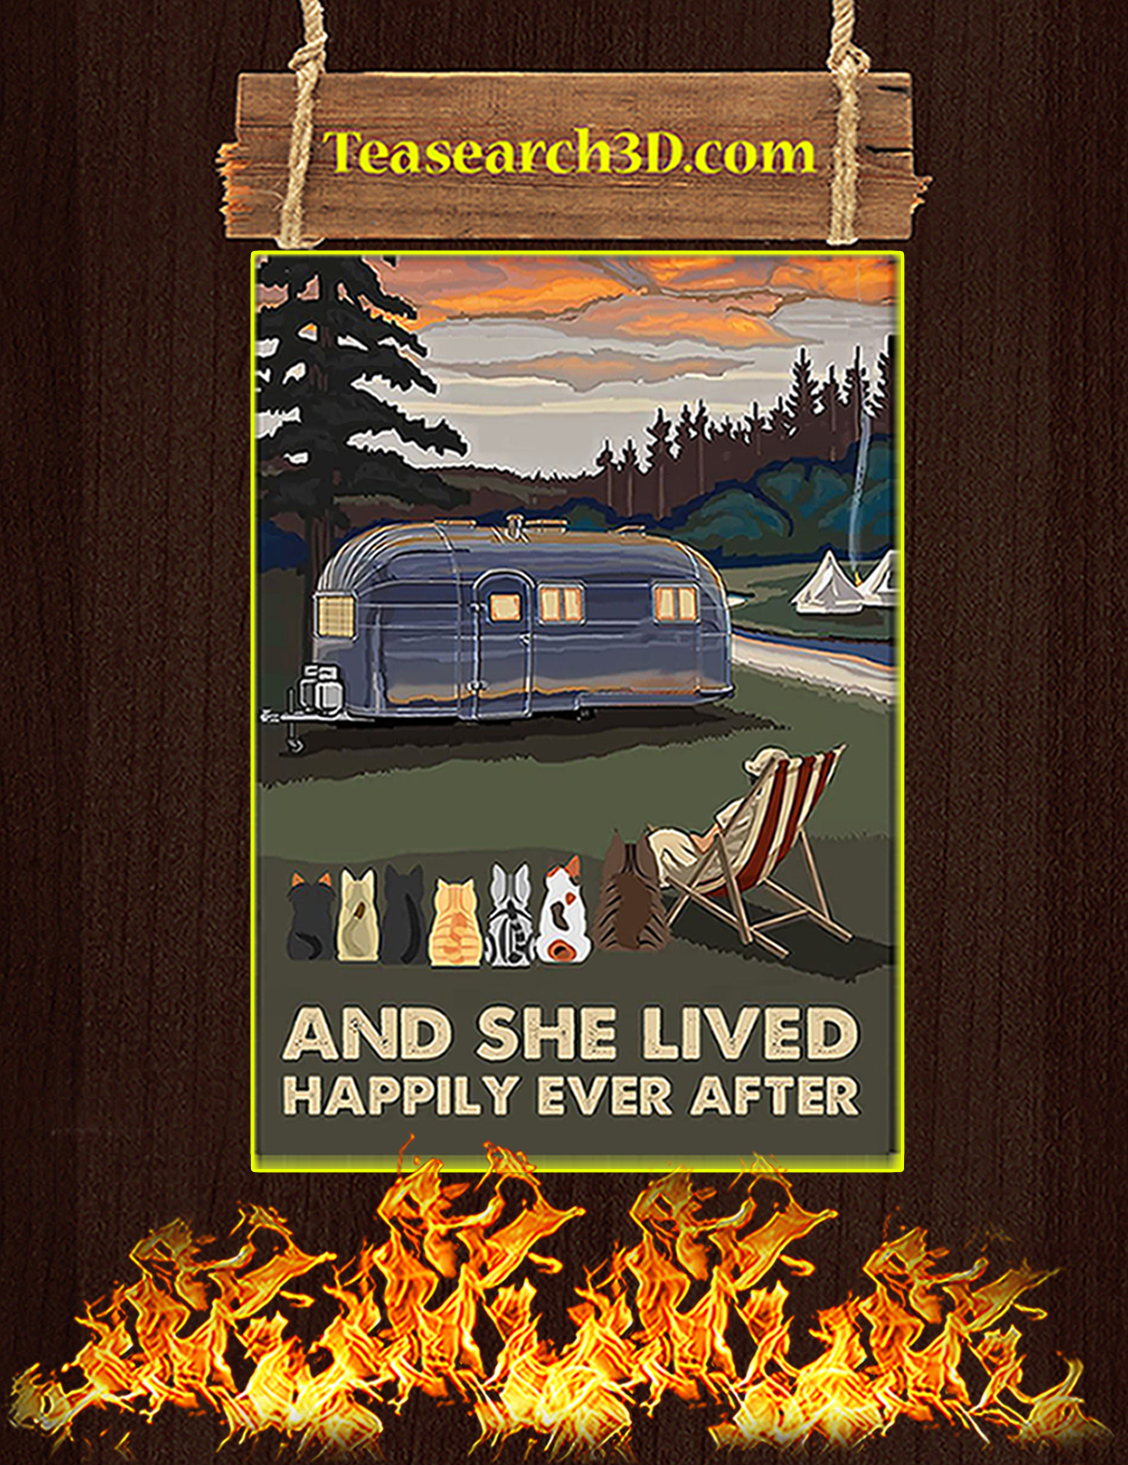 Camping cats and she lived happily ever after poster A3